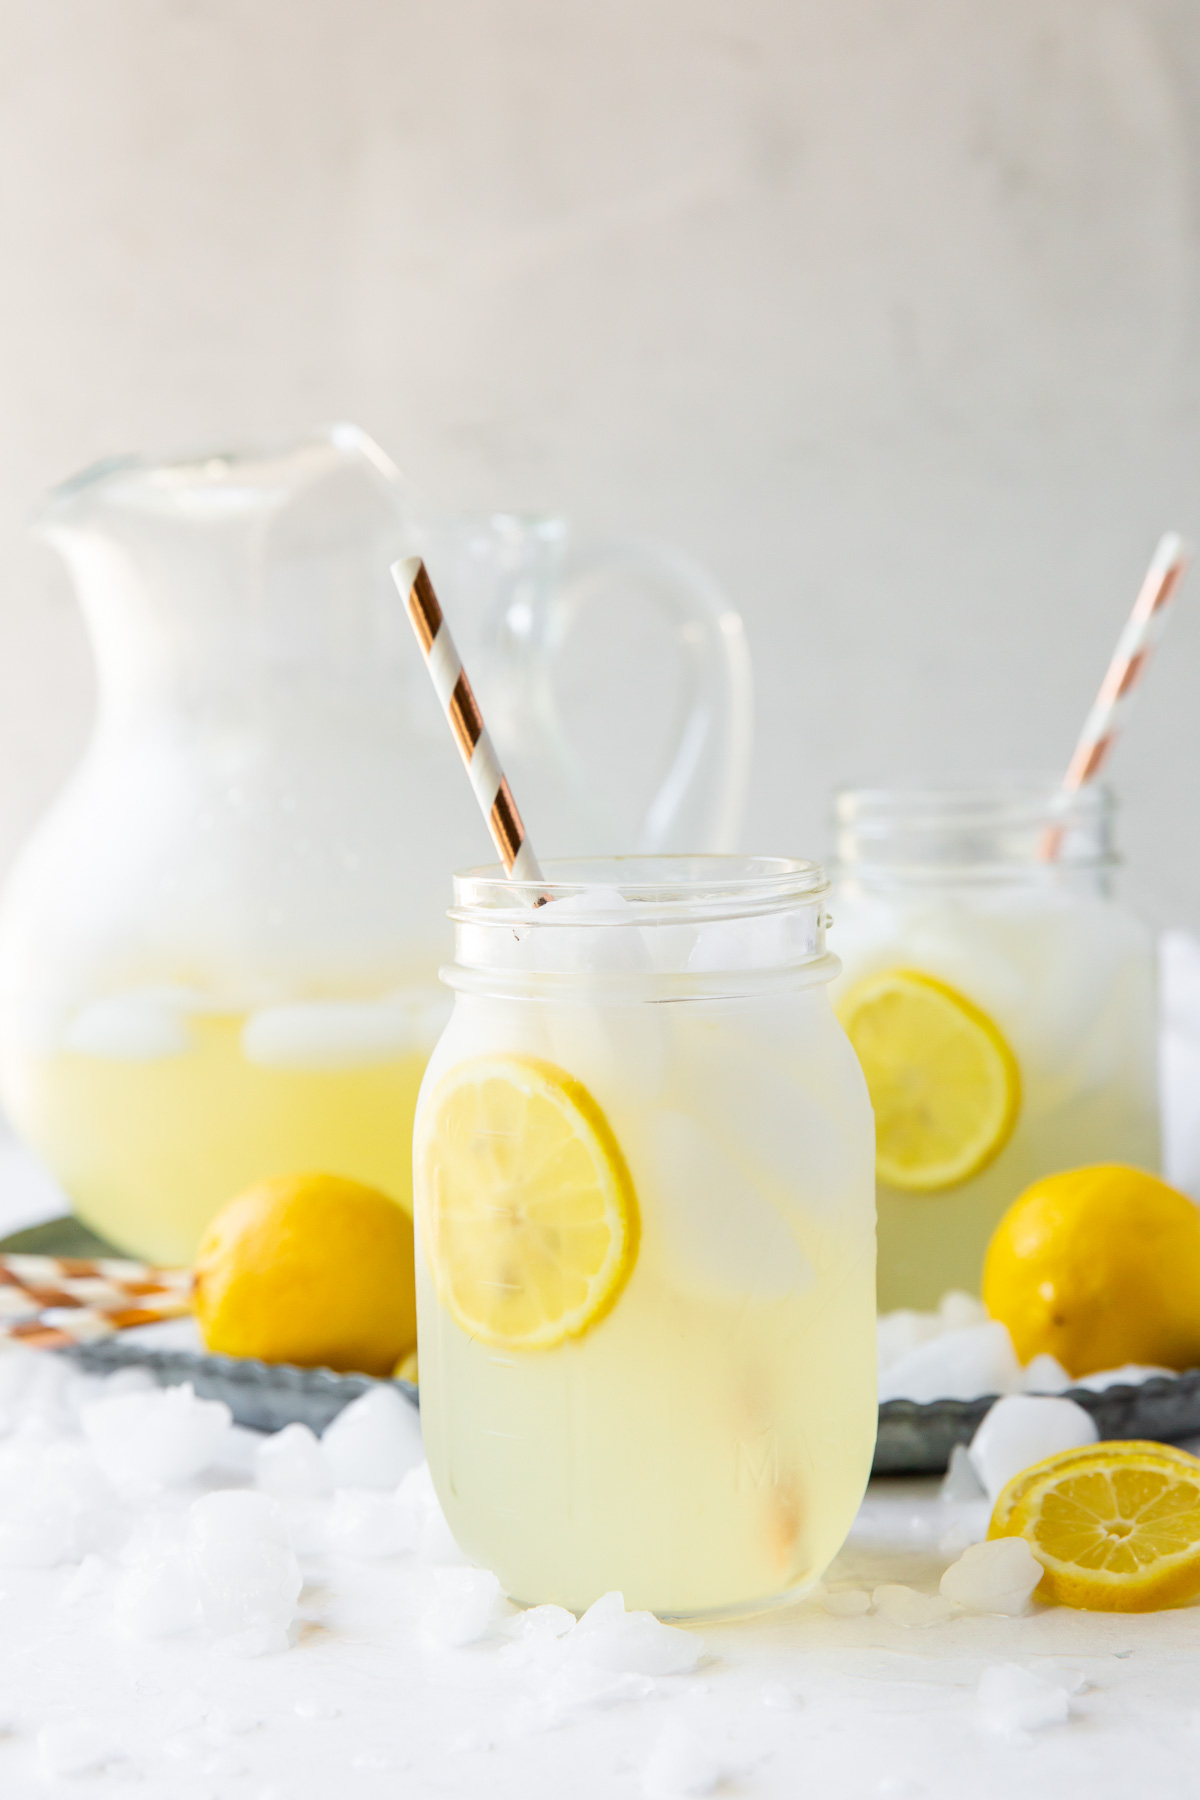 two glasses and a pitcher of homemade lemonade